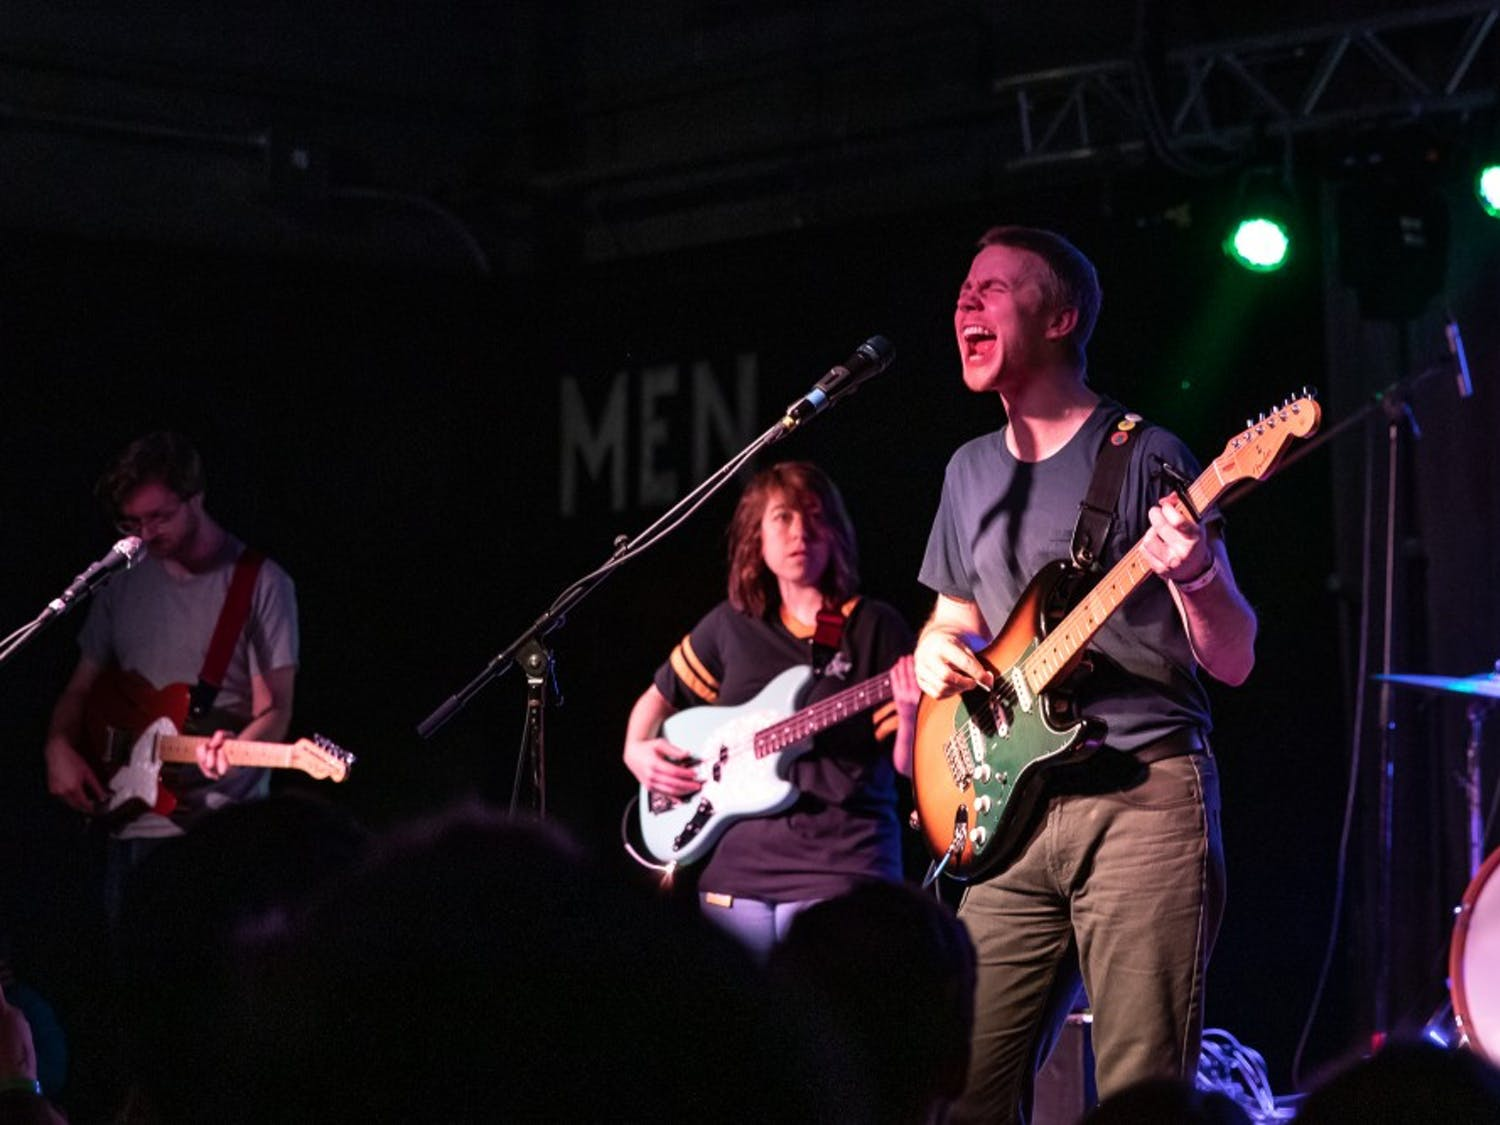 Lead vocalist Evan Stephens Hall (center) of Pinegrove performs with band members Sam Skinner (guitar), Megan Michelle Bird (bass), Zack Levine (drums), and Nick Levine (guitar) perform a song on the fourth night of their winter tour at The Blind Tiger in Greensboro, N.C. on Saturday, Feb. 23, 2019. Pinegrove began their winter tour following the release of their album, Skylight, which dropped on Sept. 28, 2018.